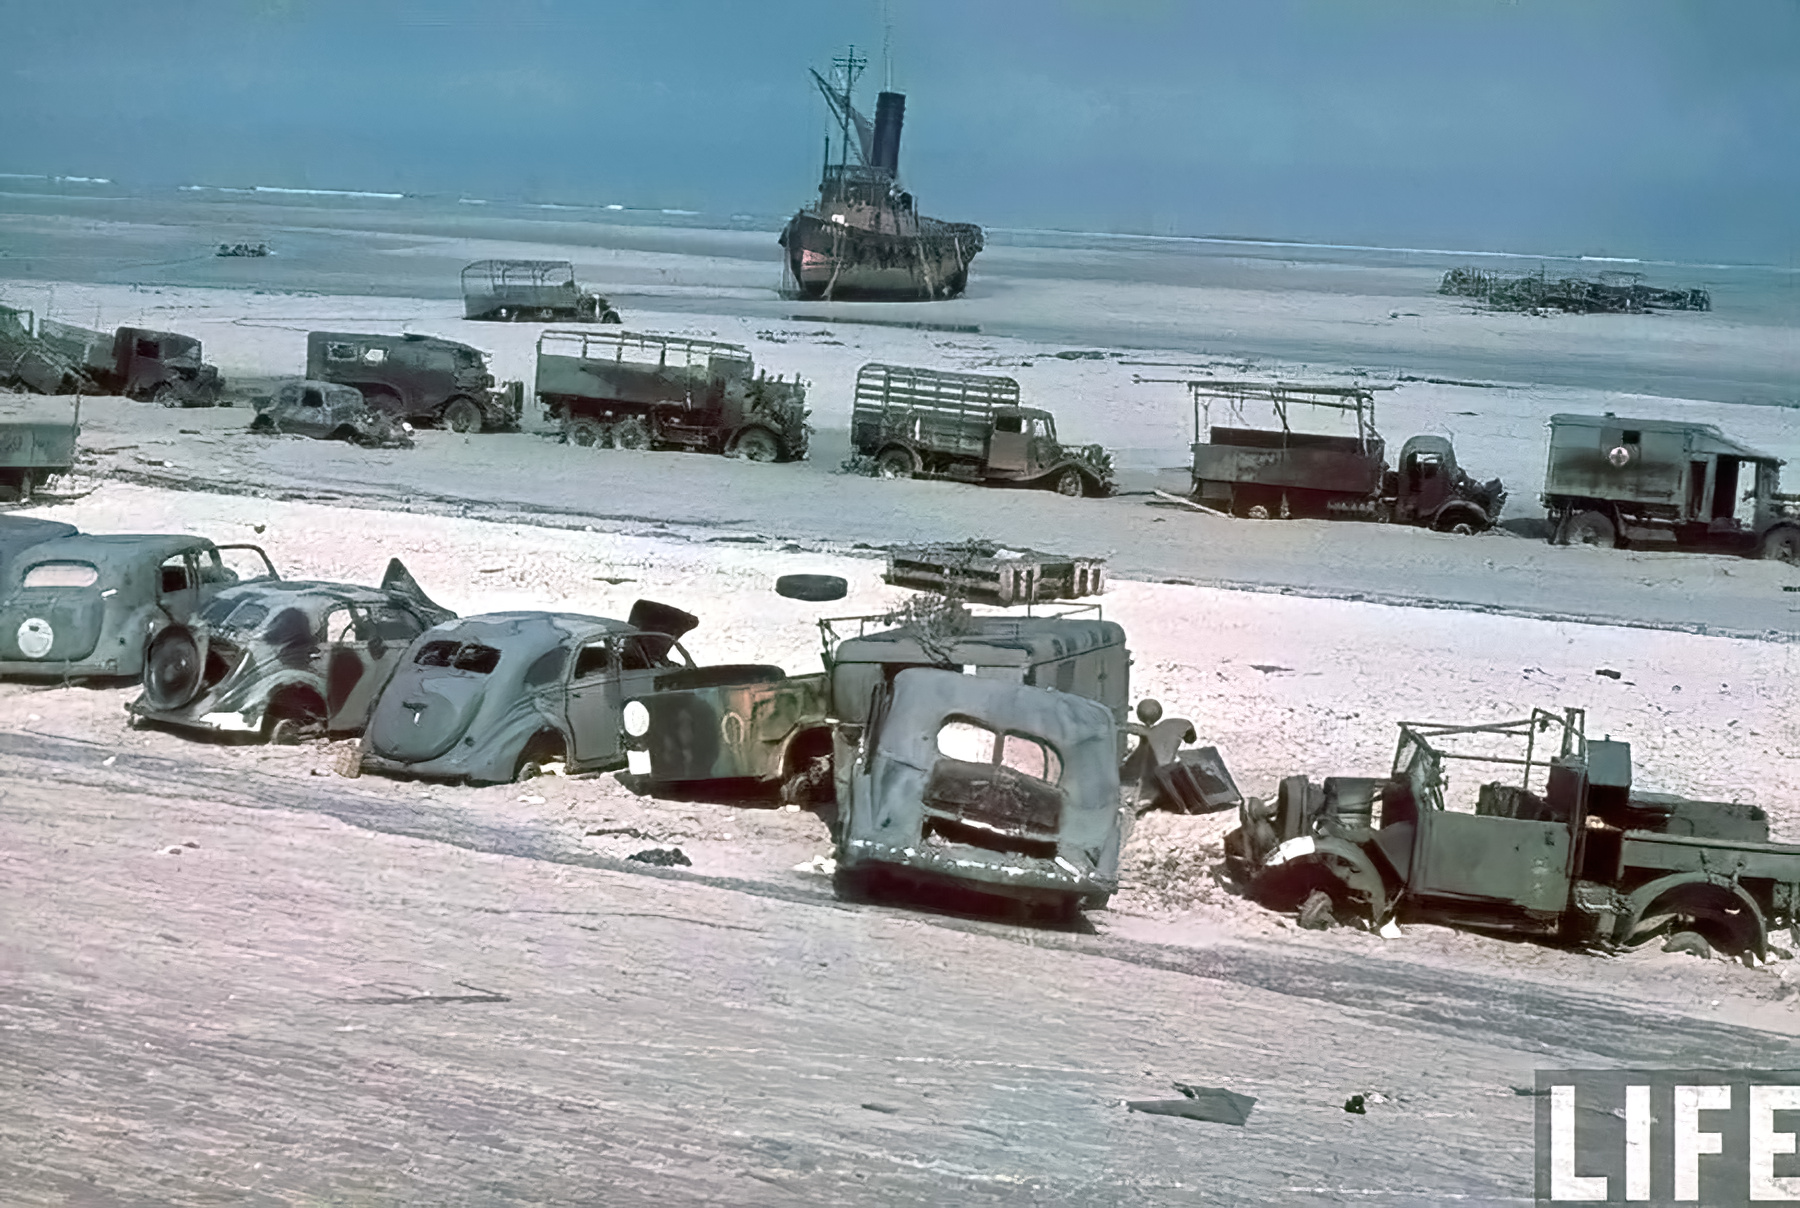 Dunkirk littered with destroyed vehicles after the BEF withdrawal from France 12th Jun 1940 01